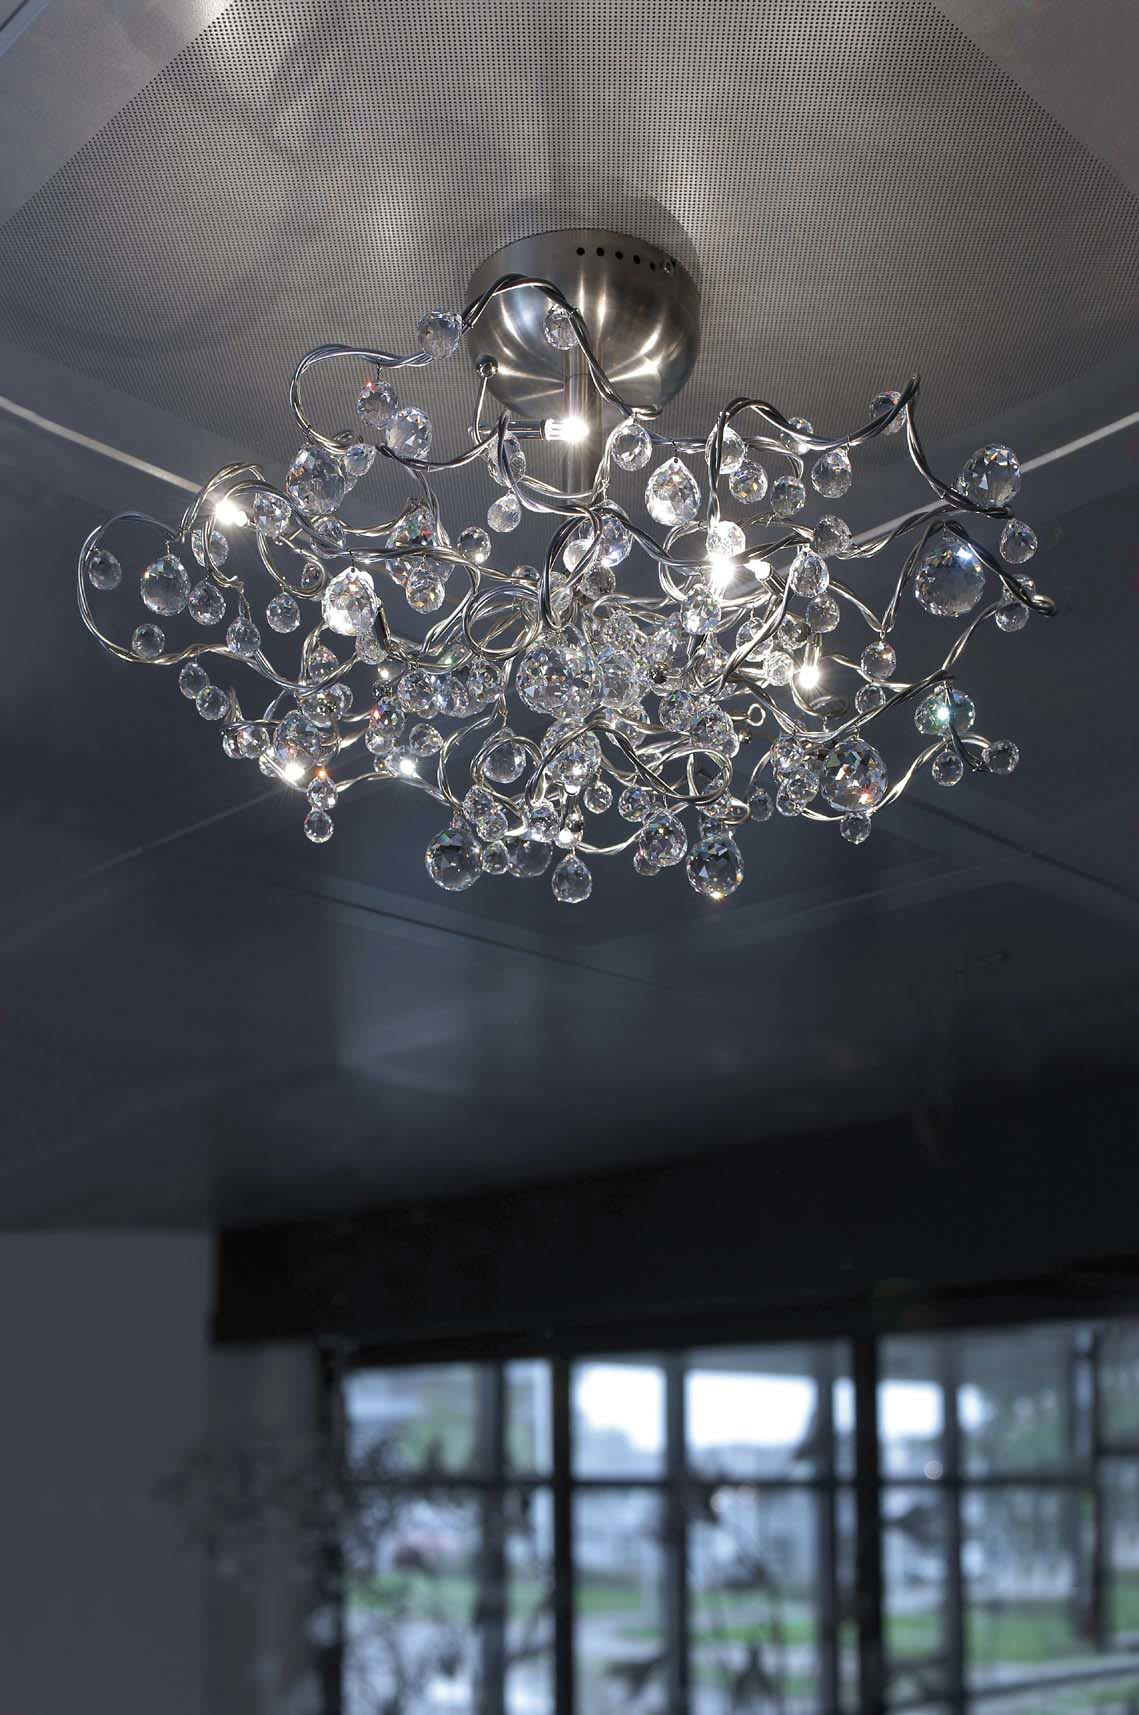 Tiara diamond 9 light ceiling light with drops in asfour crystal tiara diamond 9 light ceiling light with drops in asfour crystal harco loor aloadofball Image collections